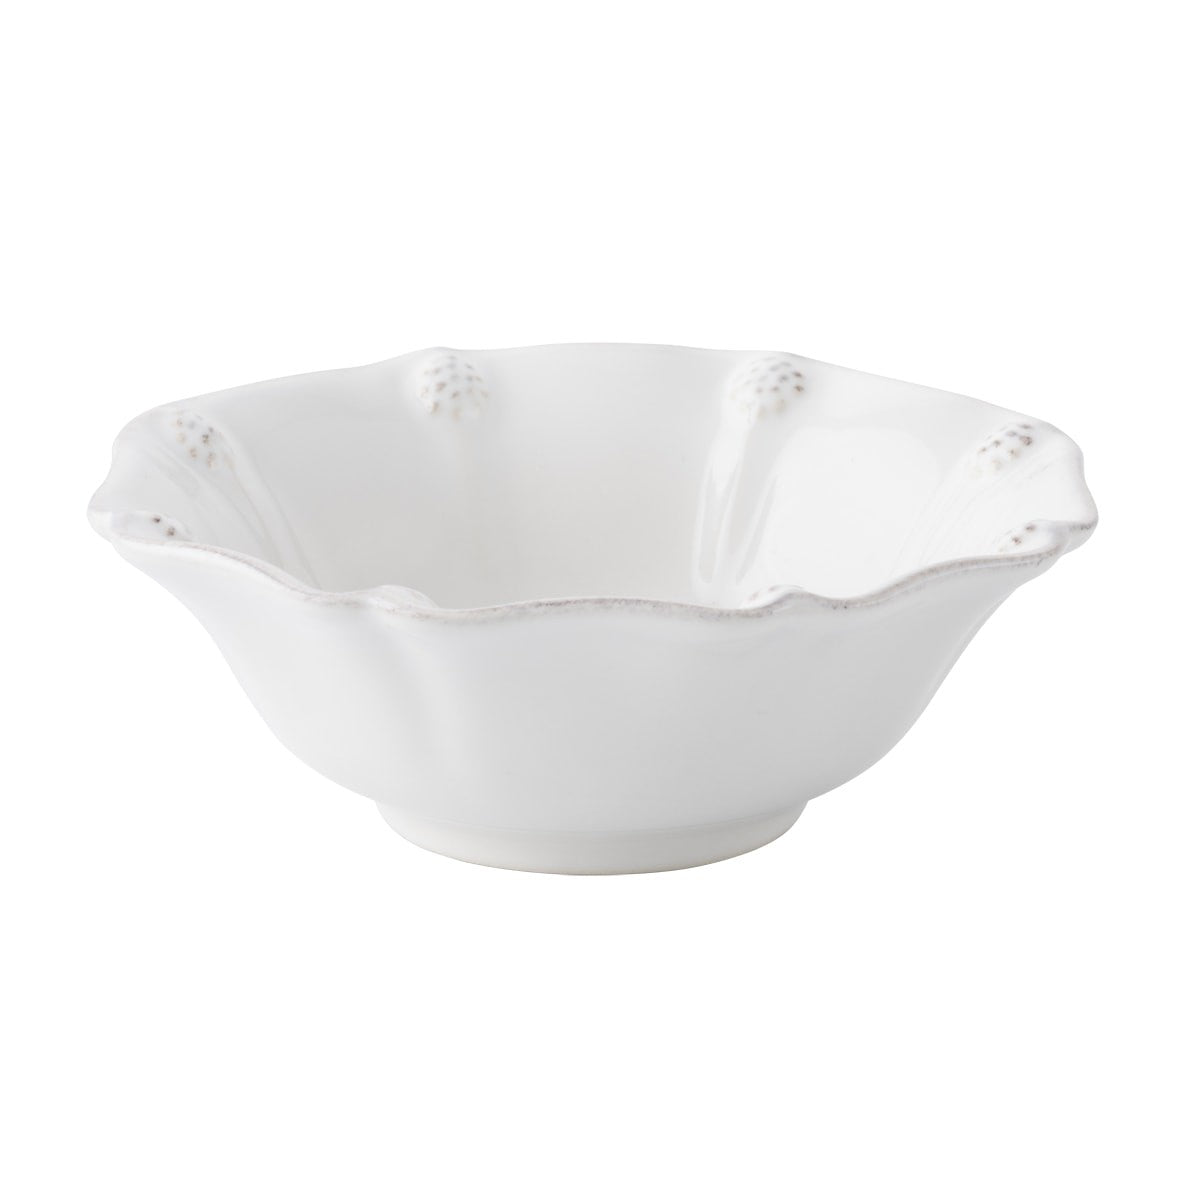 Juliska - Berry & Thread Whitewash Berry Bowl